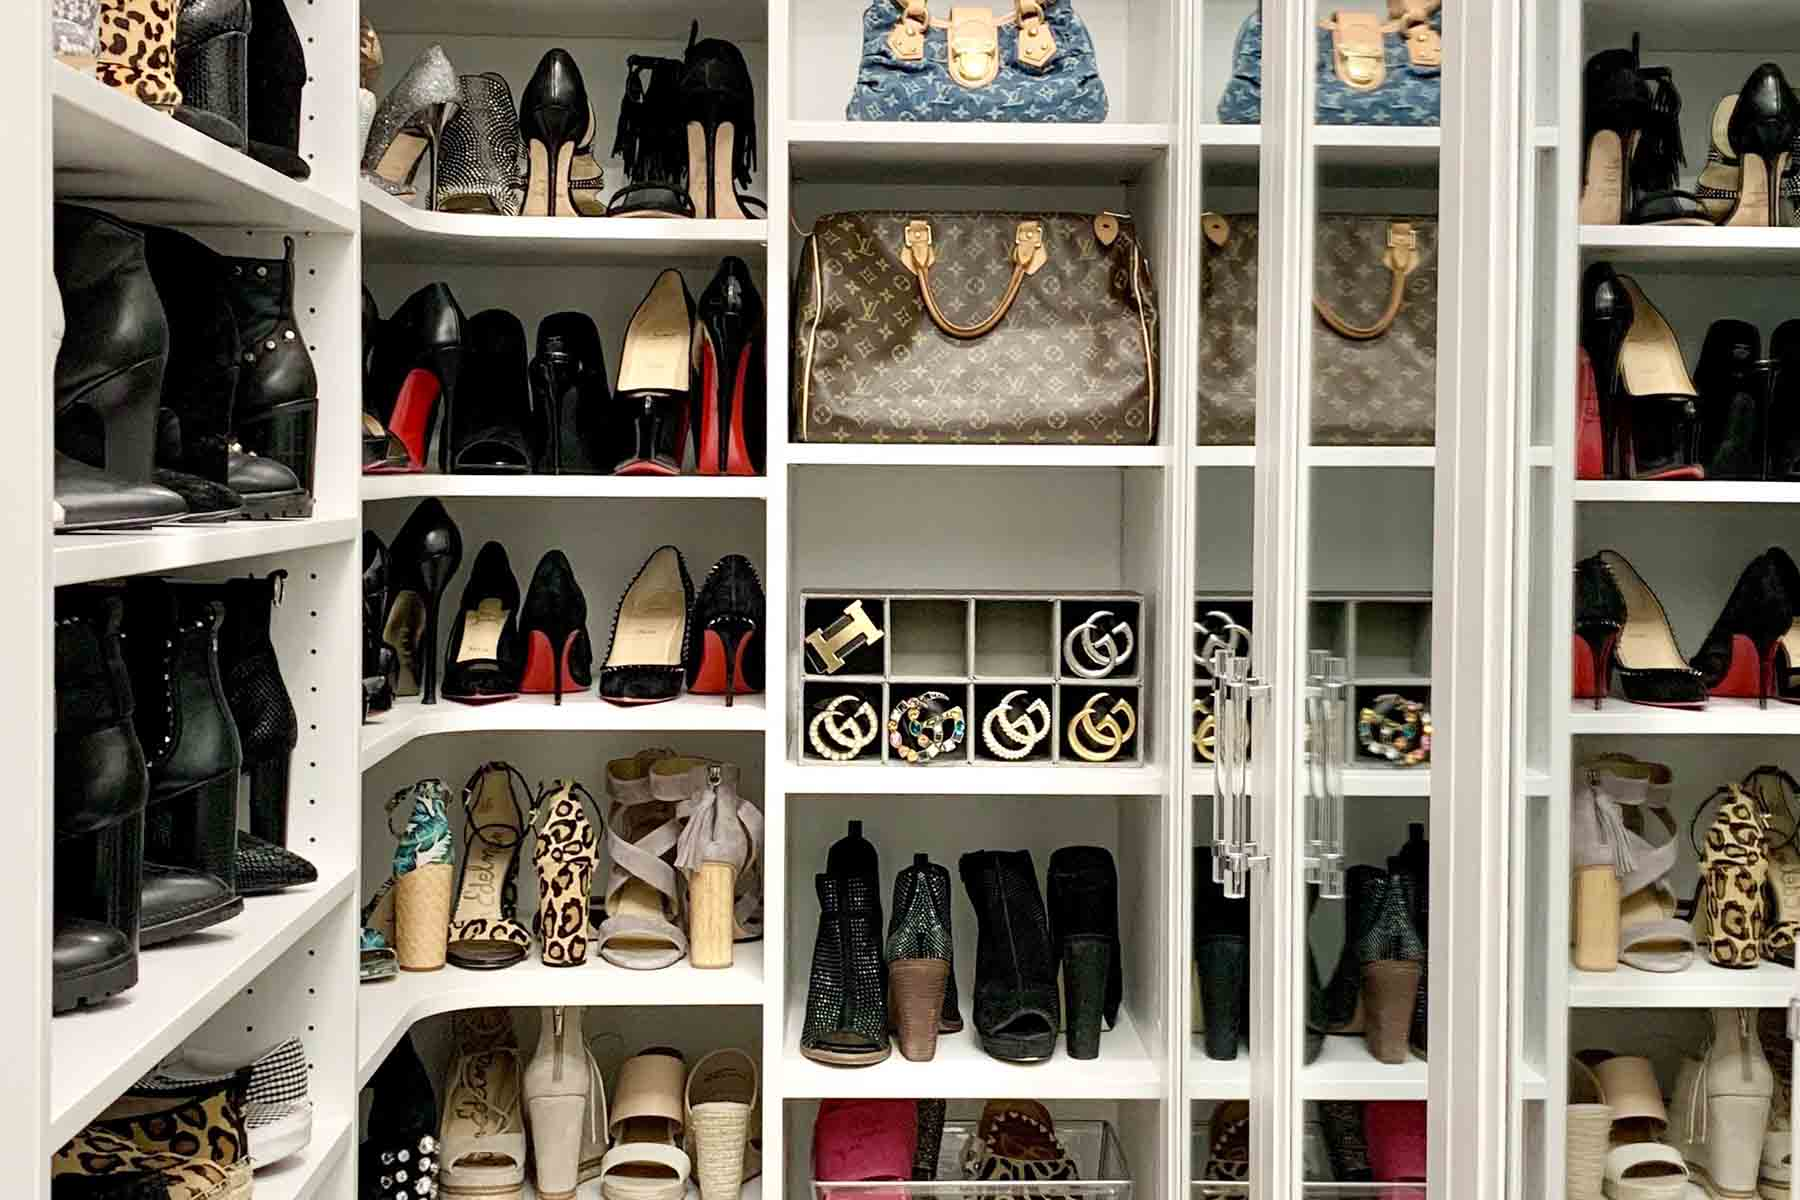 Walk-in closet with custom cabinets and shleving for shoe collection